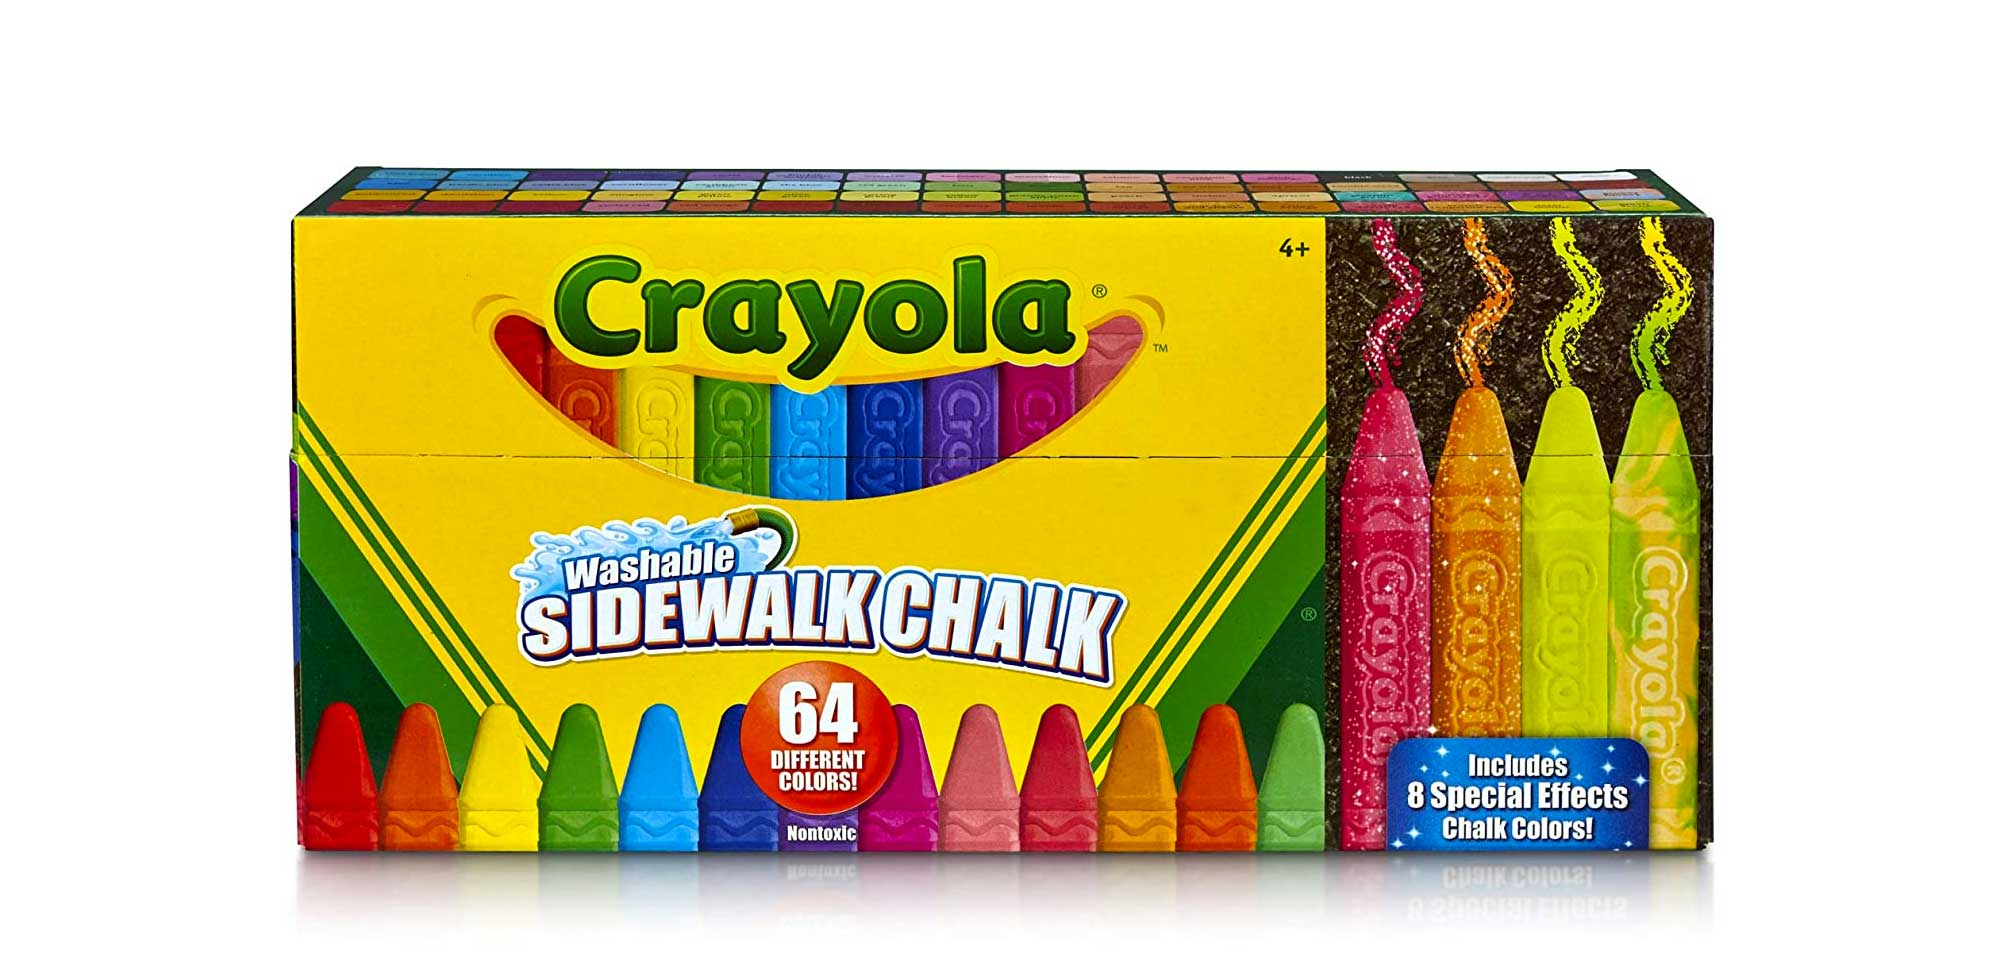 Crayola Sidewalk Chalk, Washable, Outdoor, Gifts for Kids